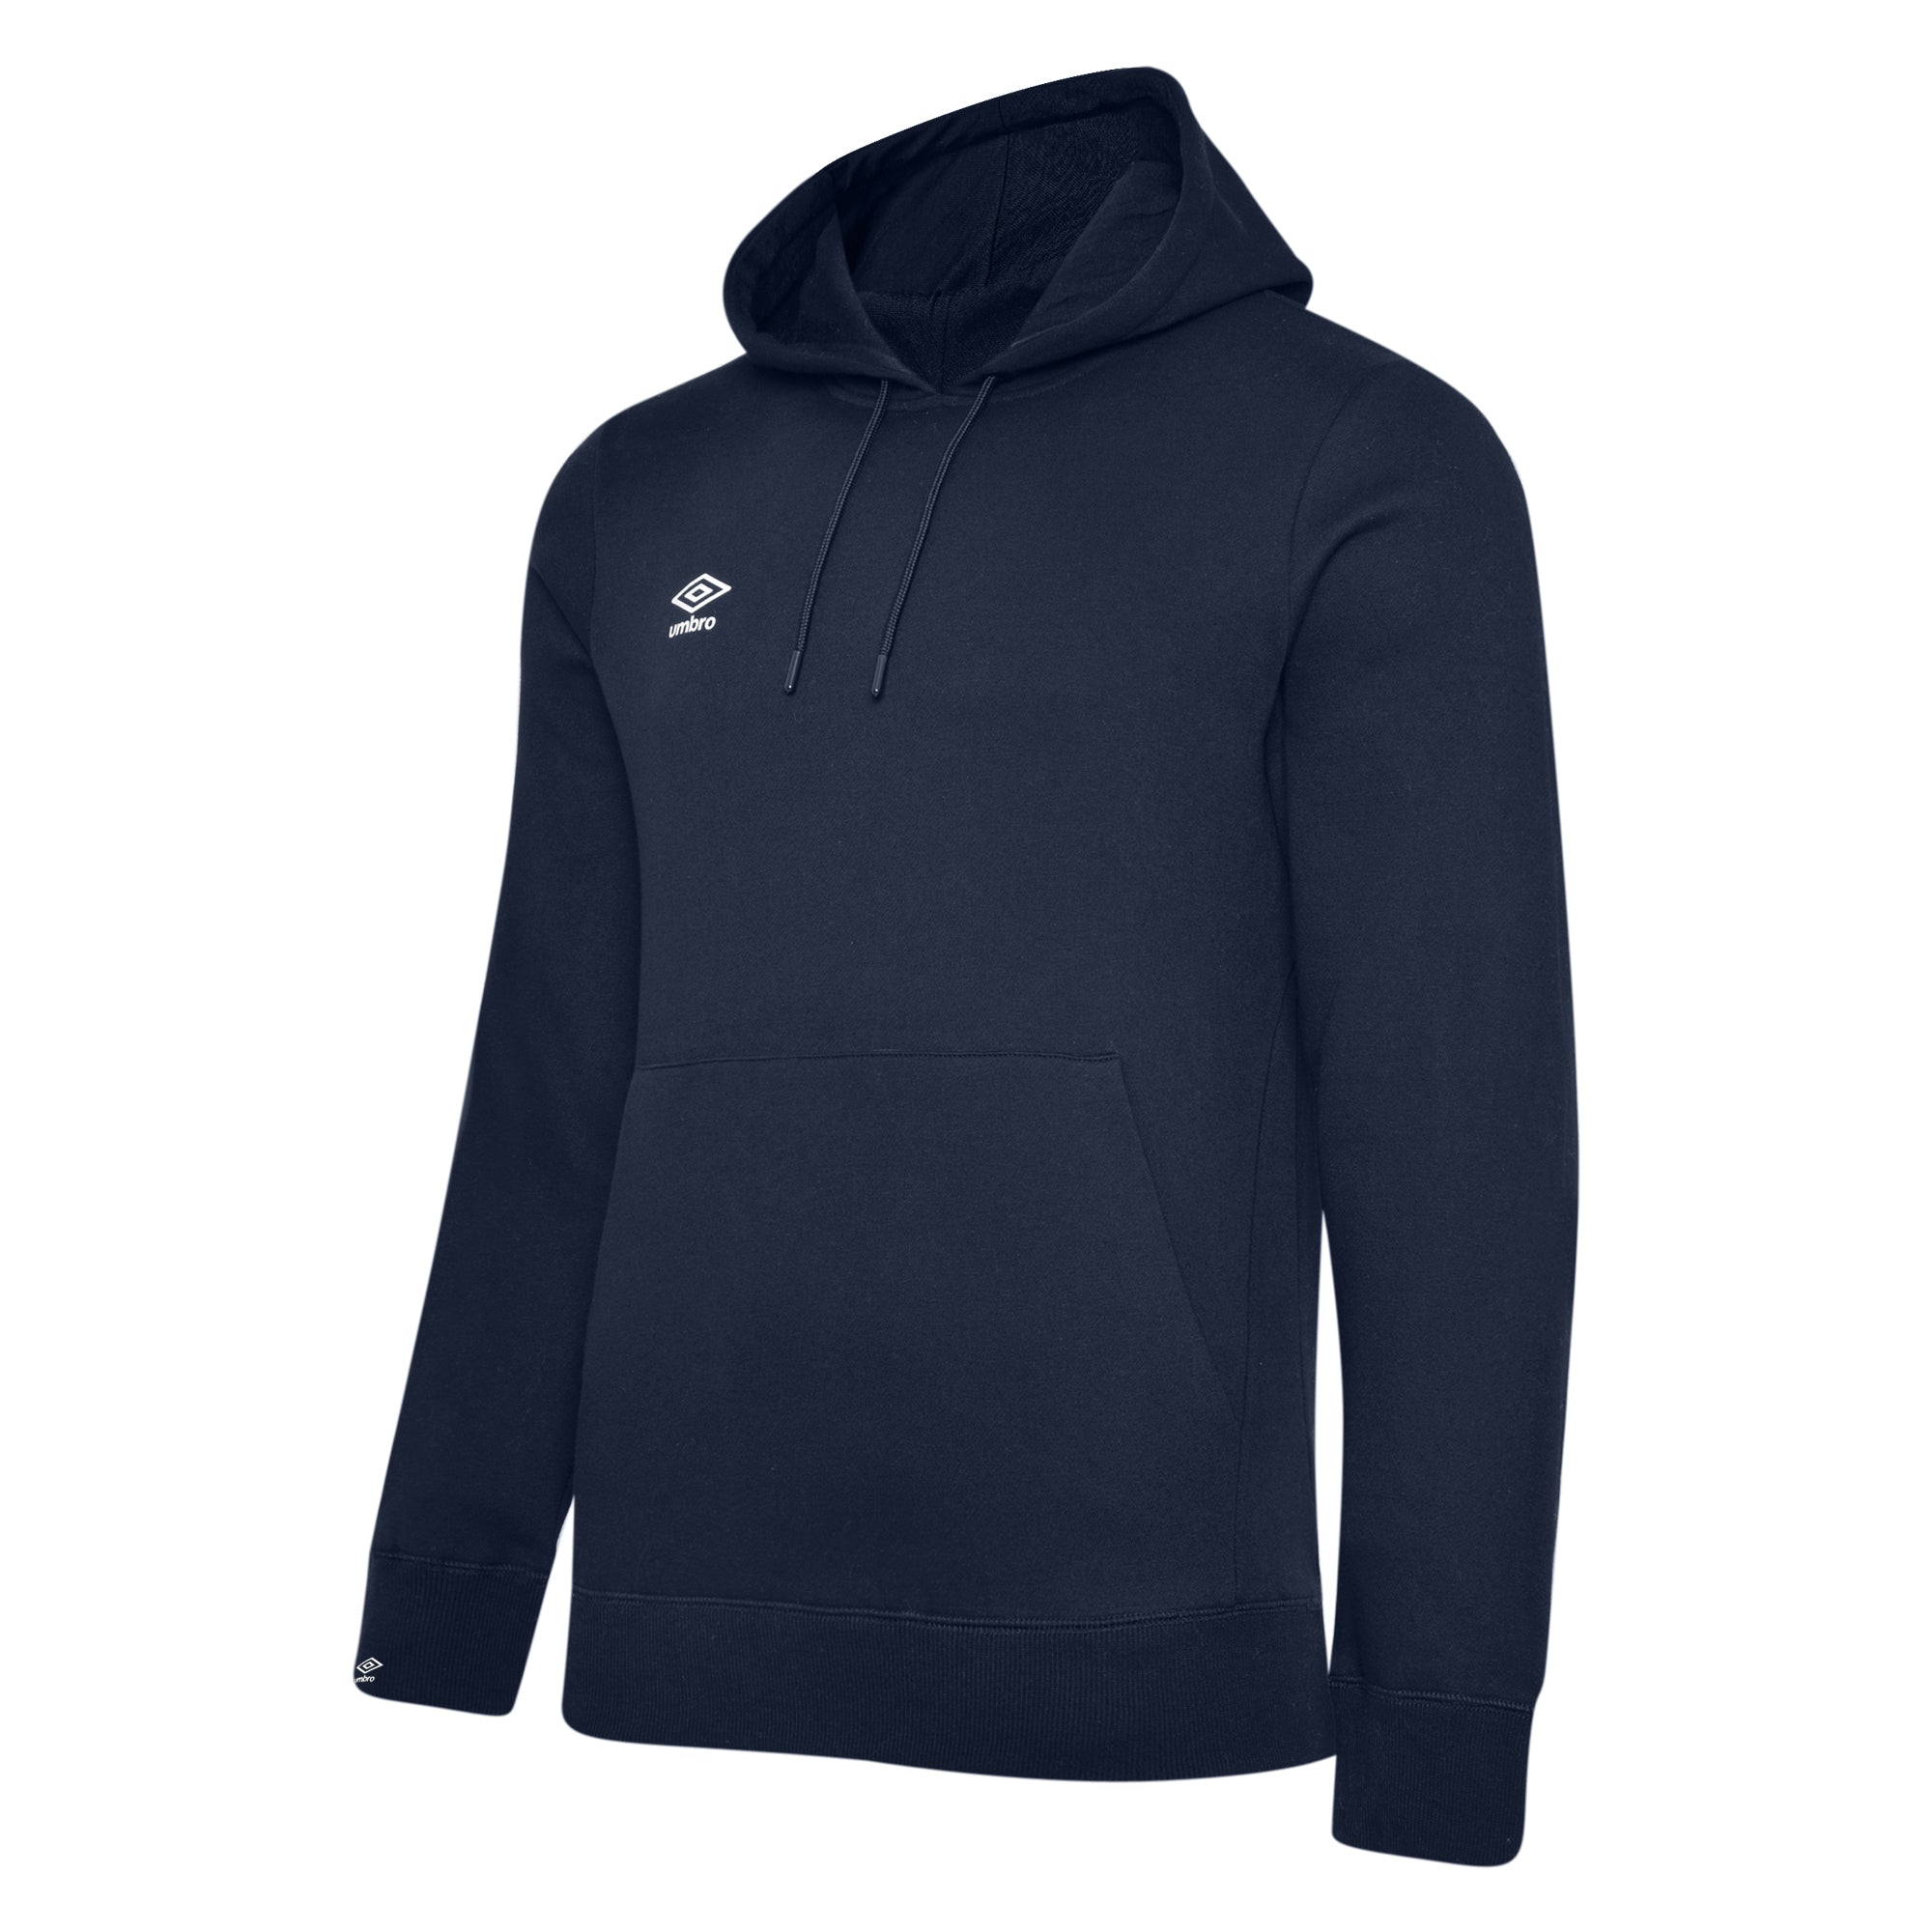 Umbro Club Leisure Hoody - TW Navy/White